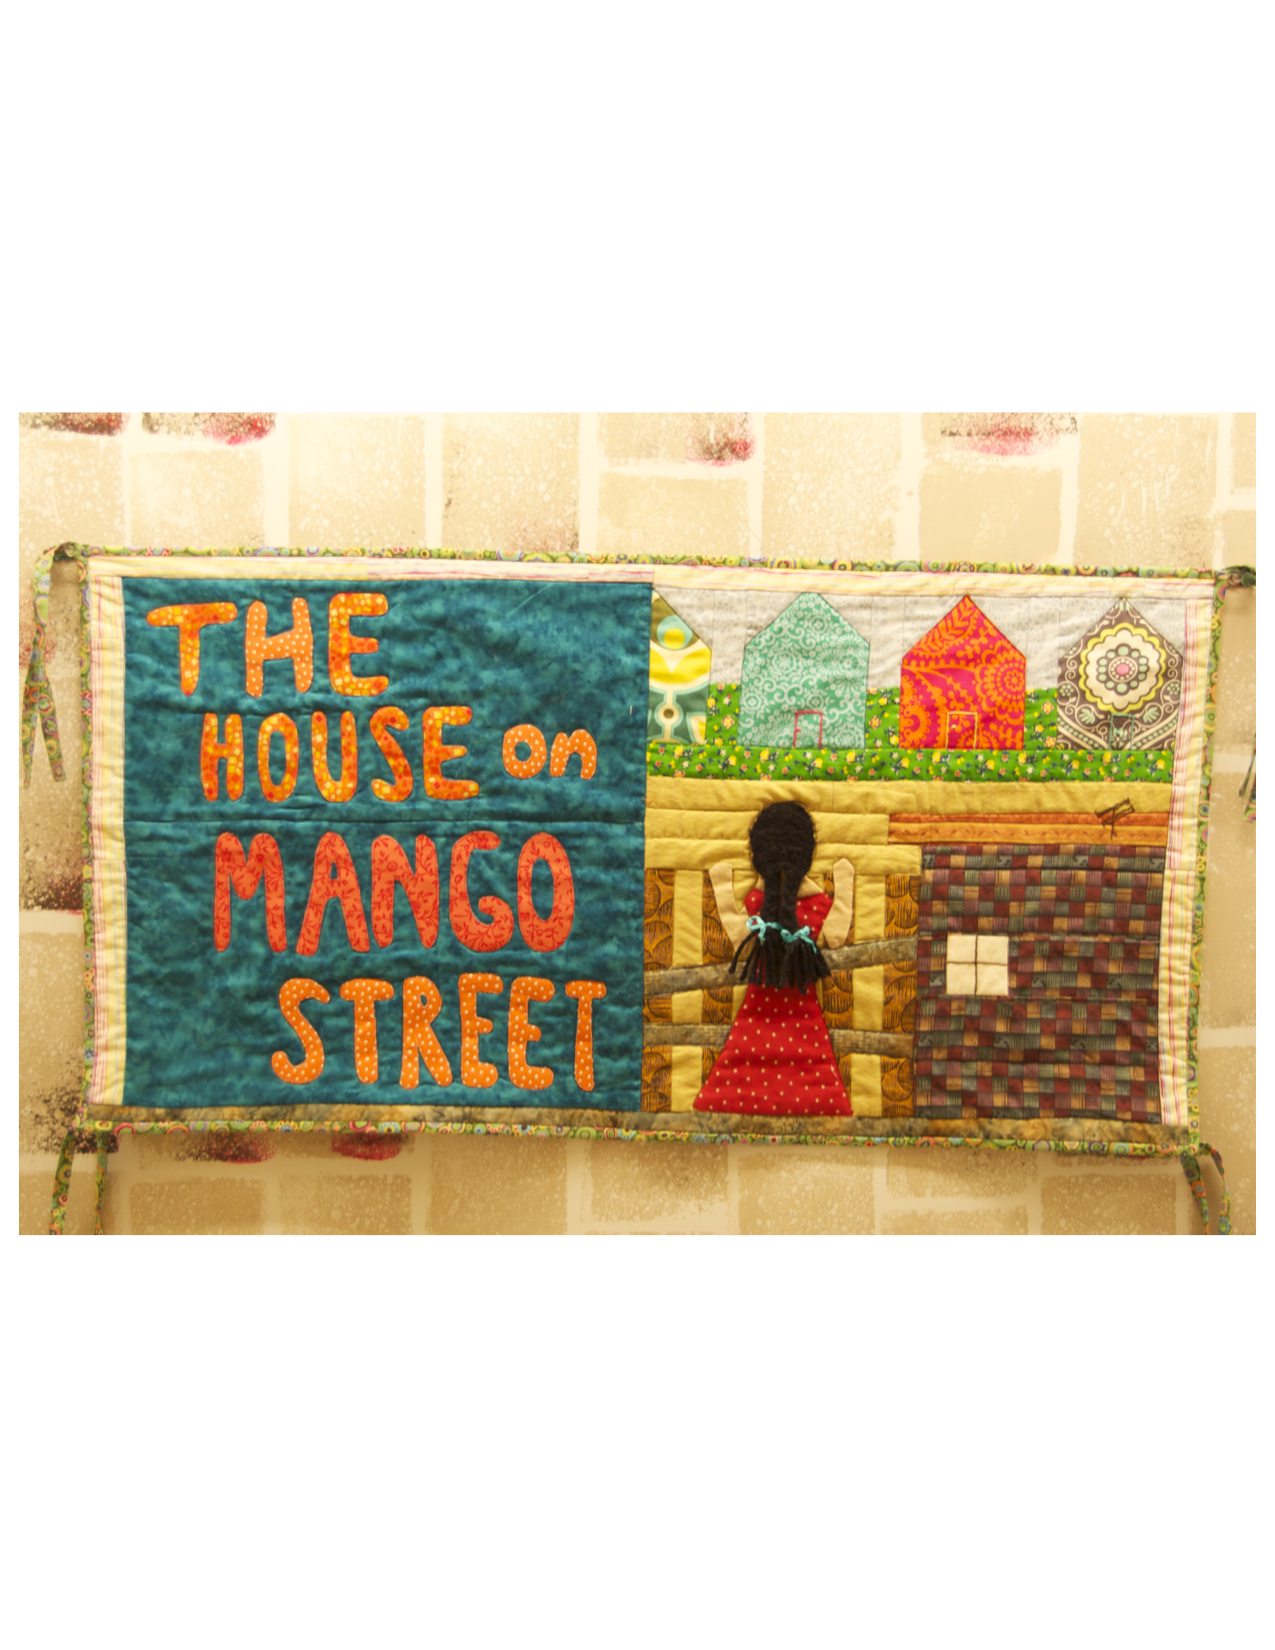 The house on mango street book project